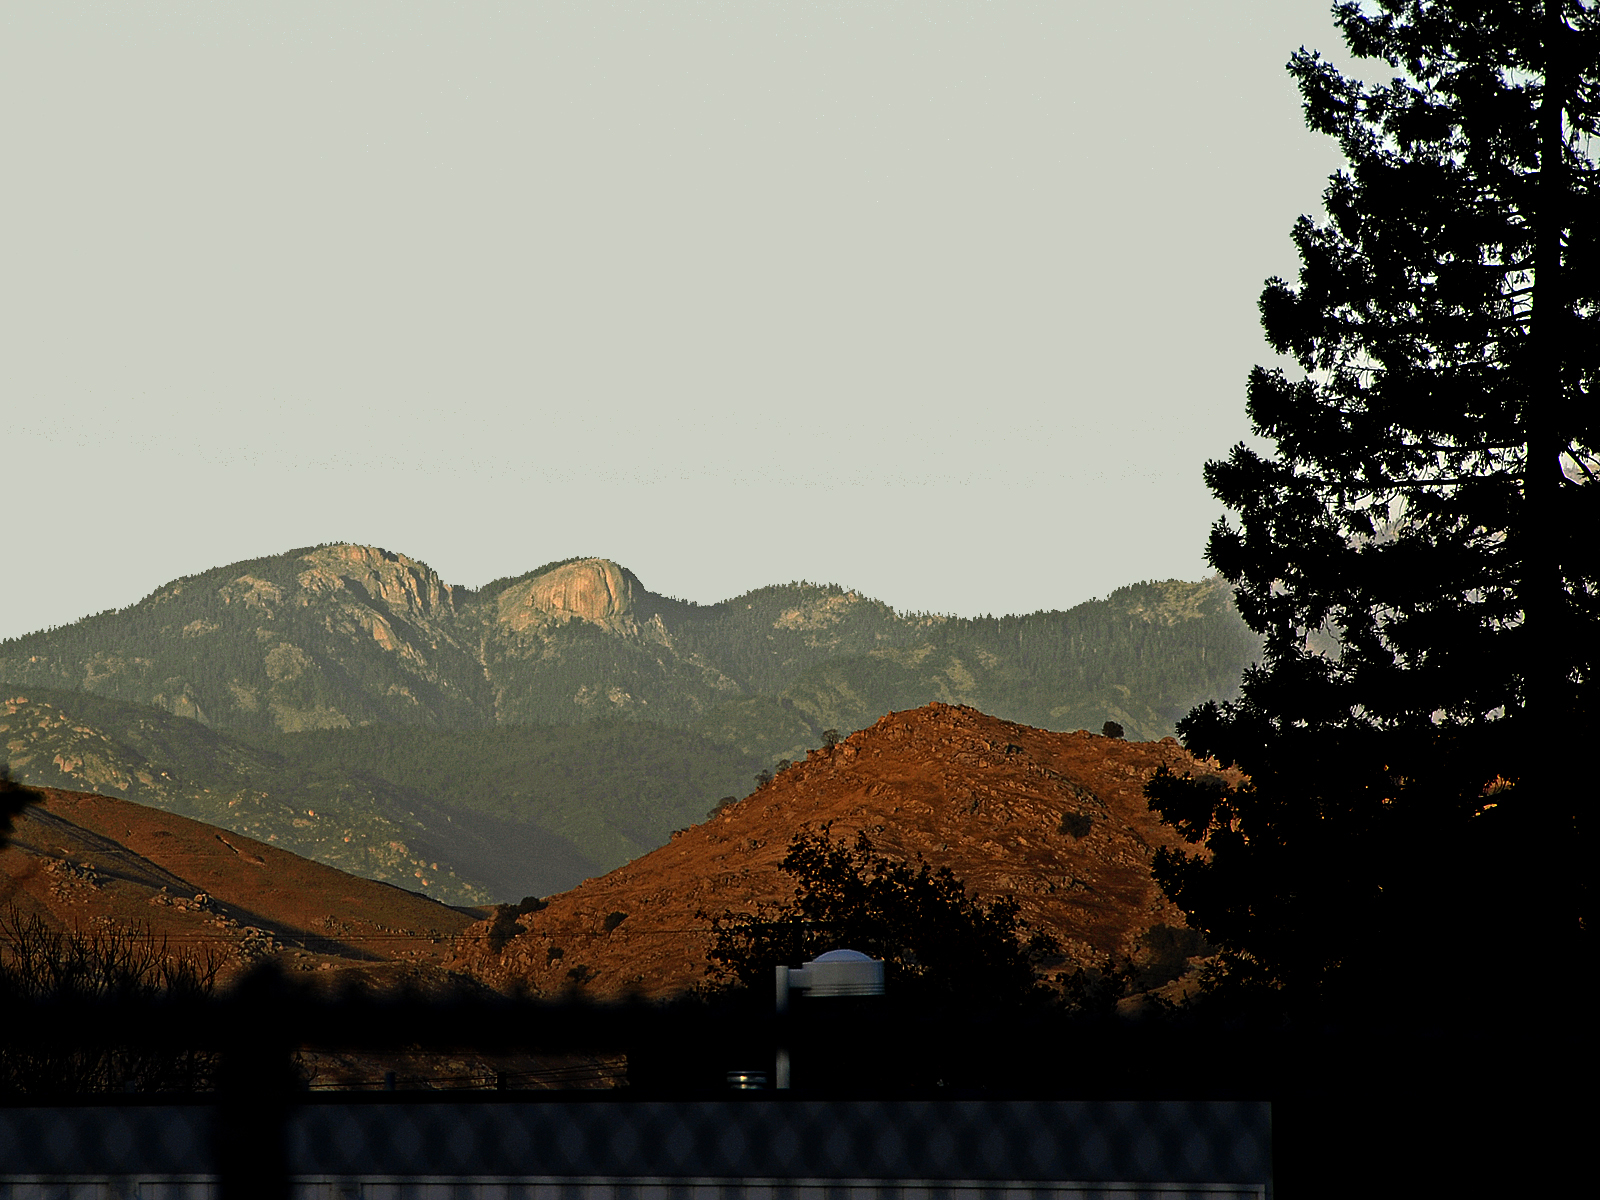 View of morro rock in sequoia national p photo